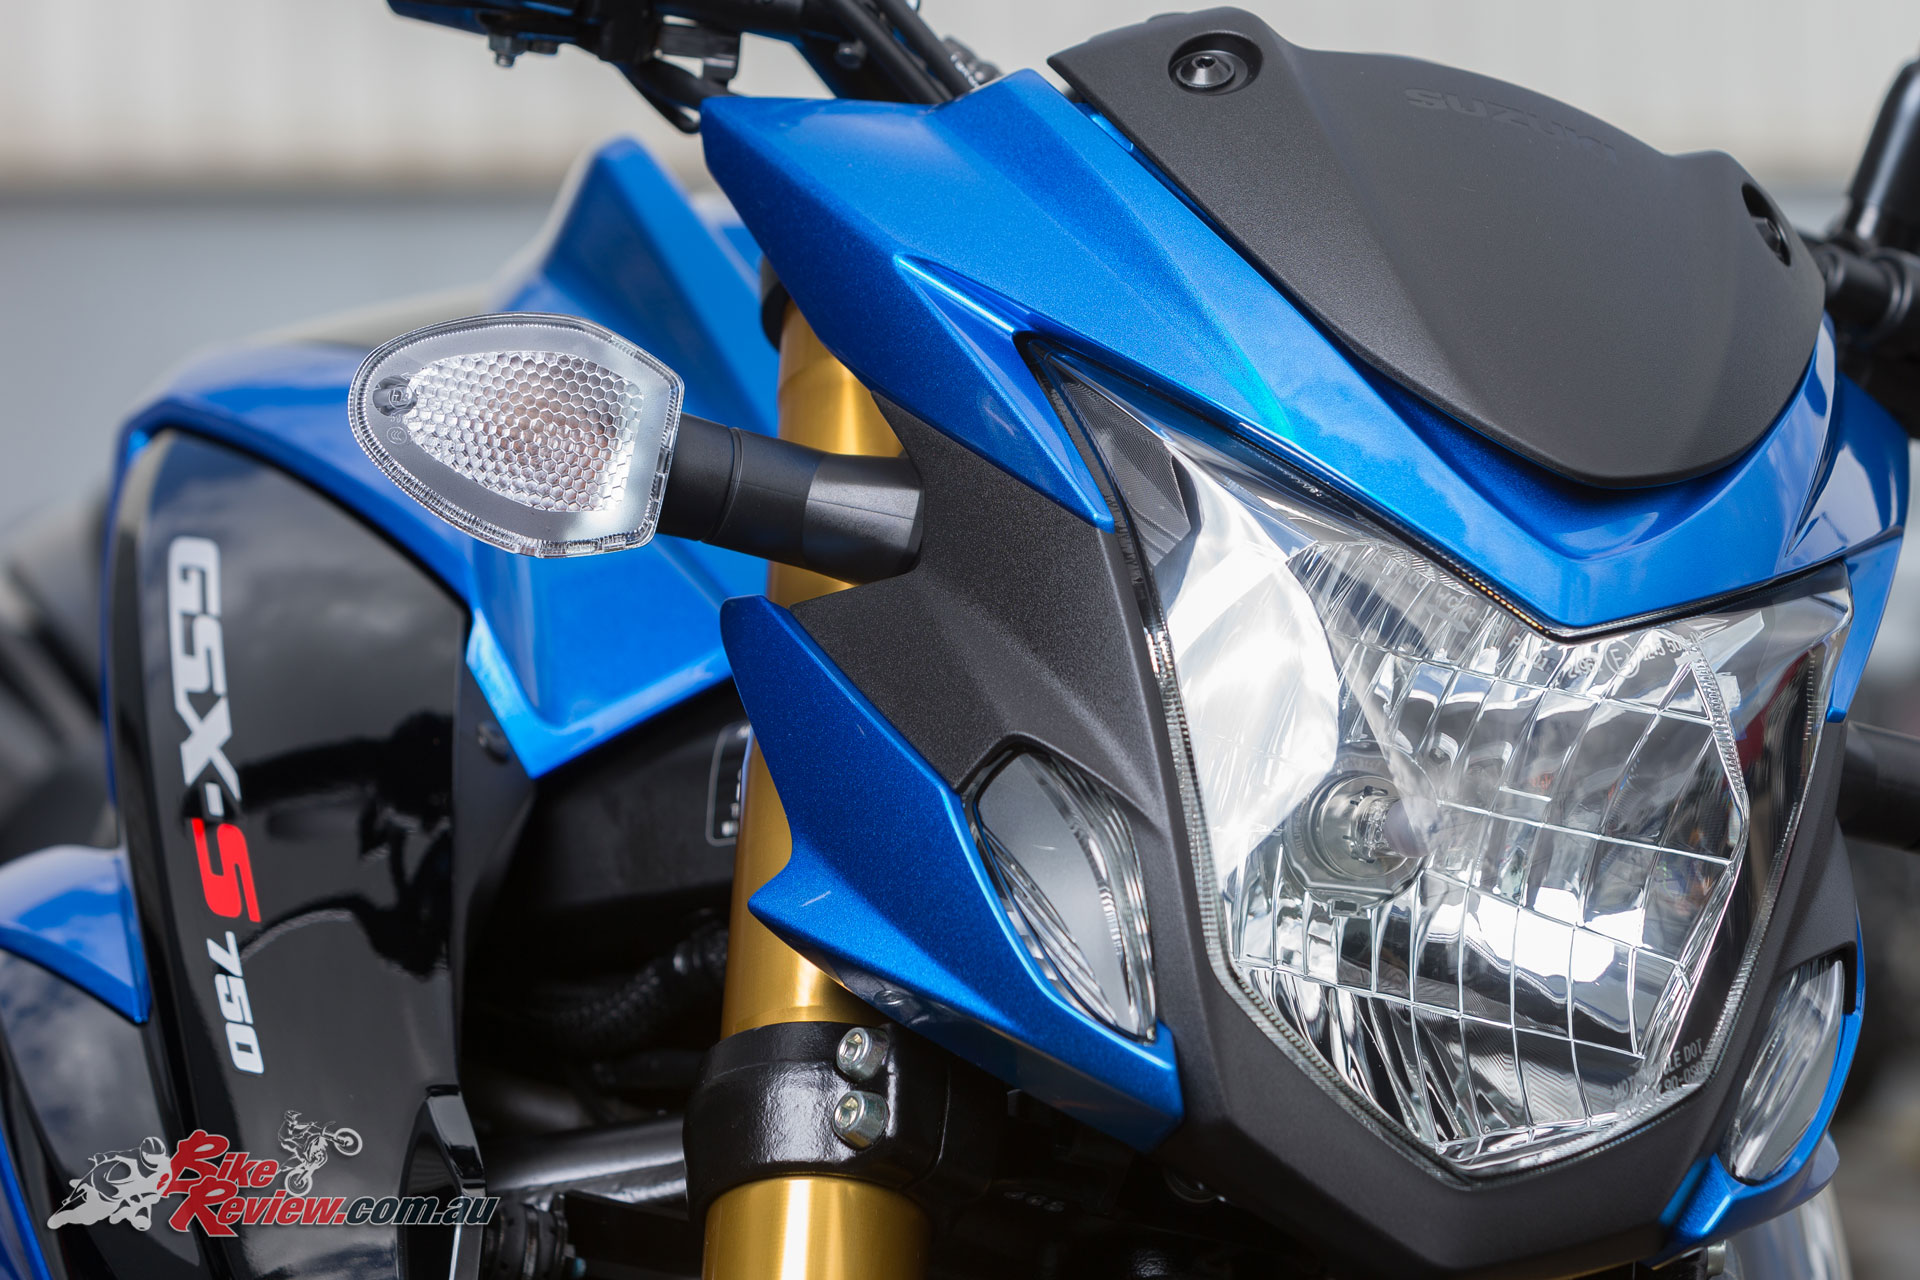 The headlight is nice and well suited to the overall styling, but not too extreme design wise. Probably Suzuki hedging their bets to keep the bike attractive to the widest possible audience.